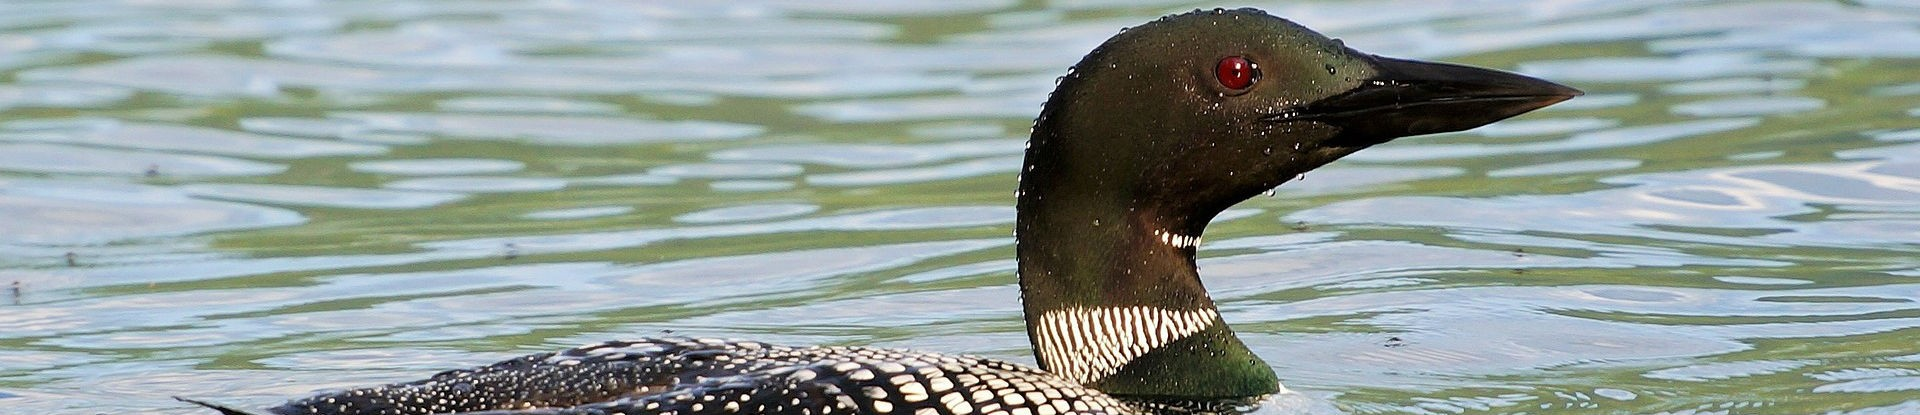 Image of a common loon